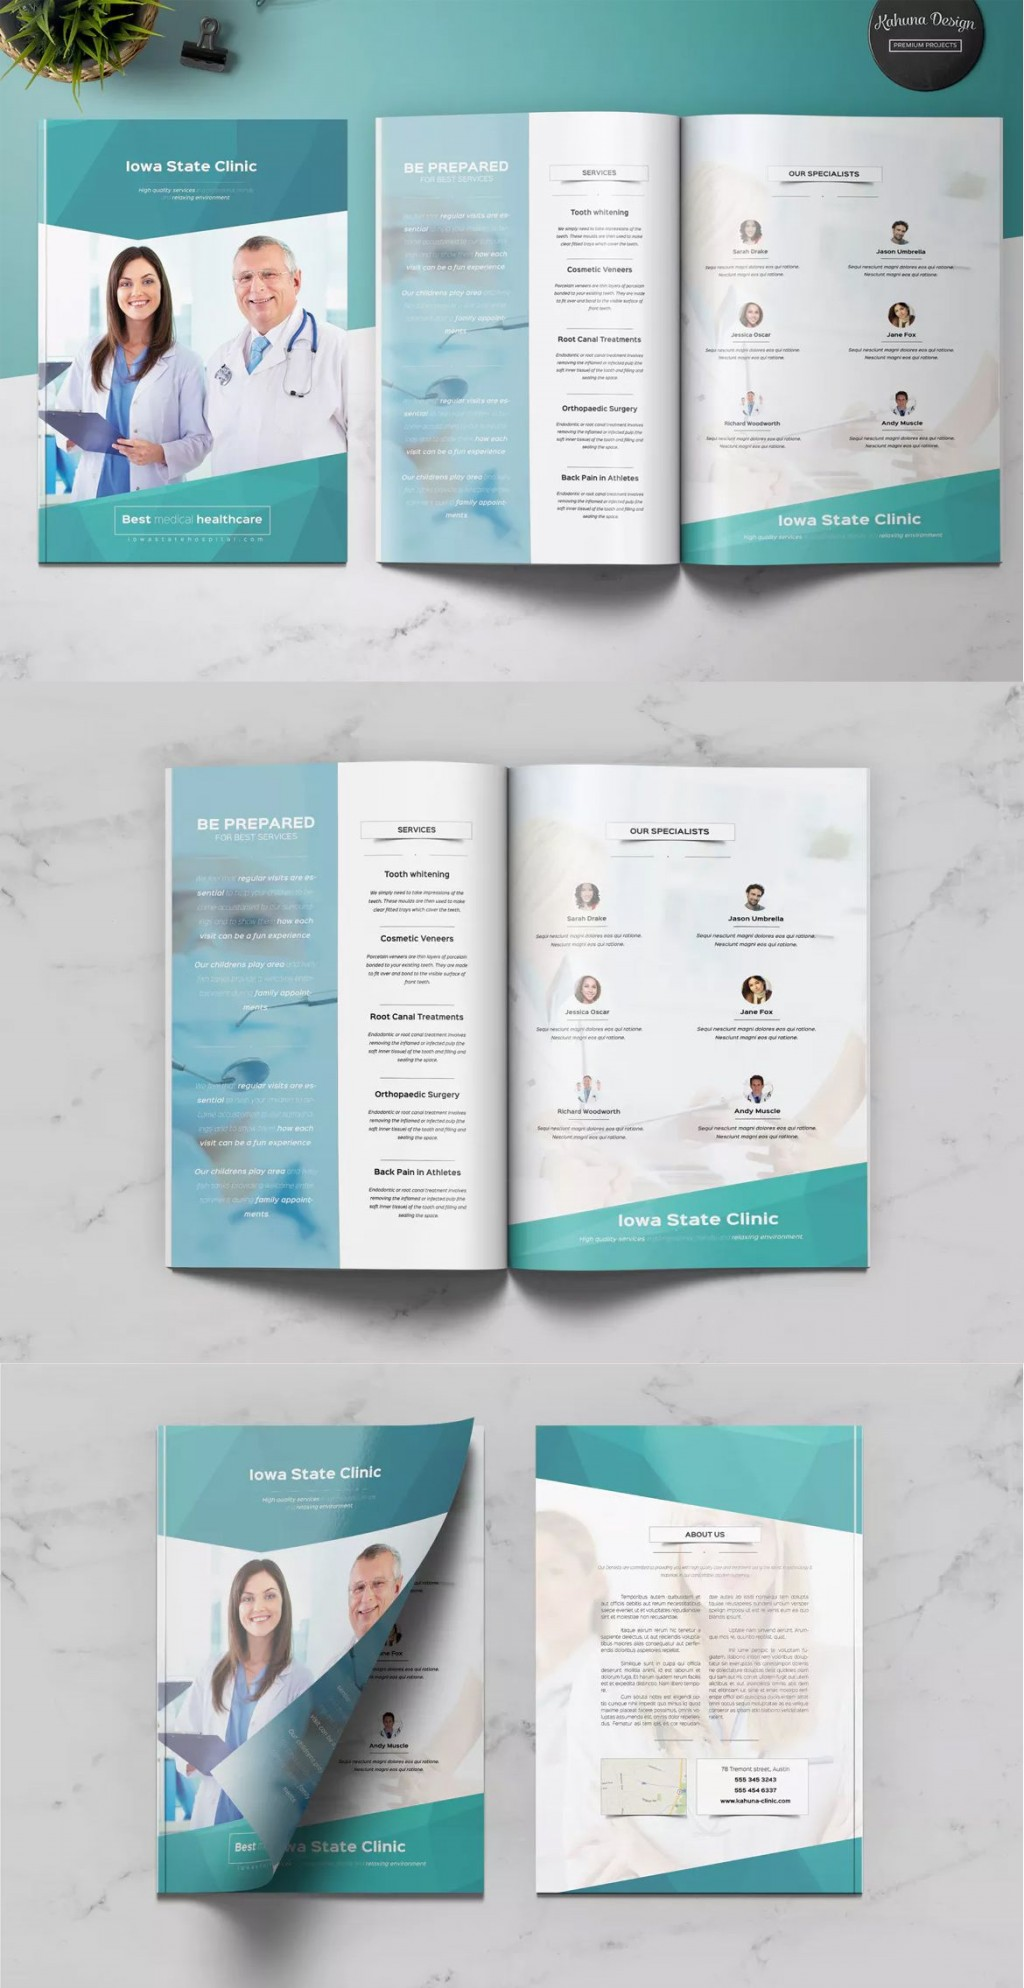 005 Archaicawful Indesign A4 Brochure Template Free Download High Definition Large